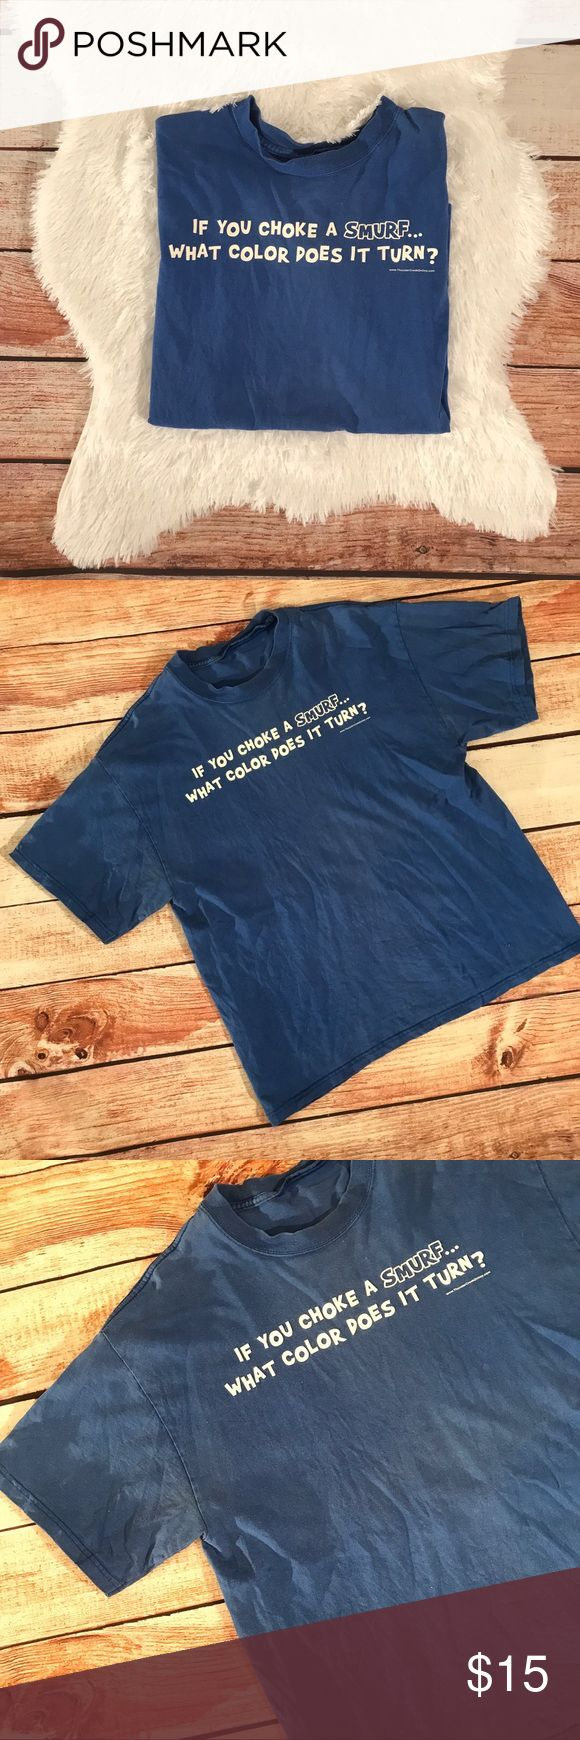 """v i n t a g e 